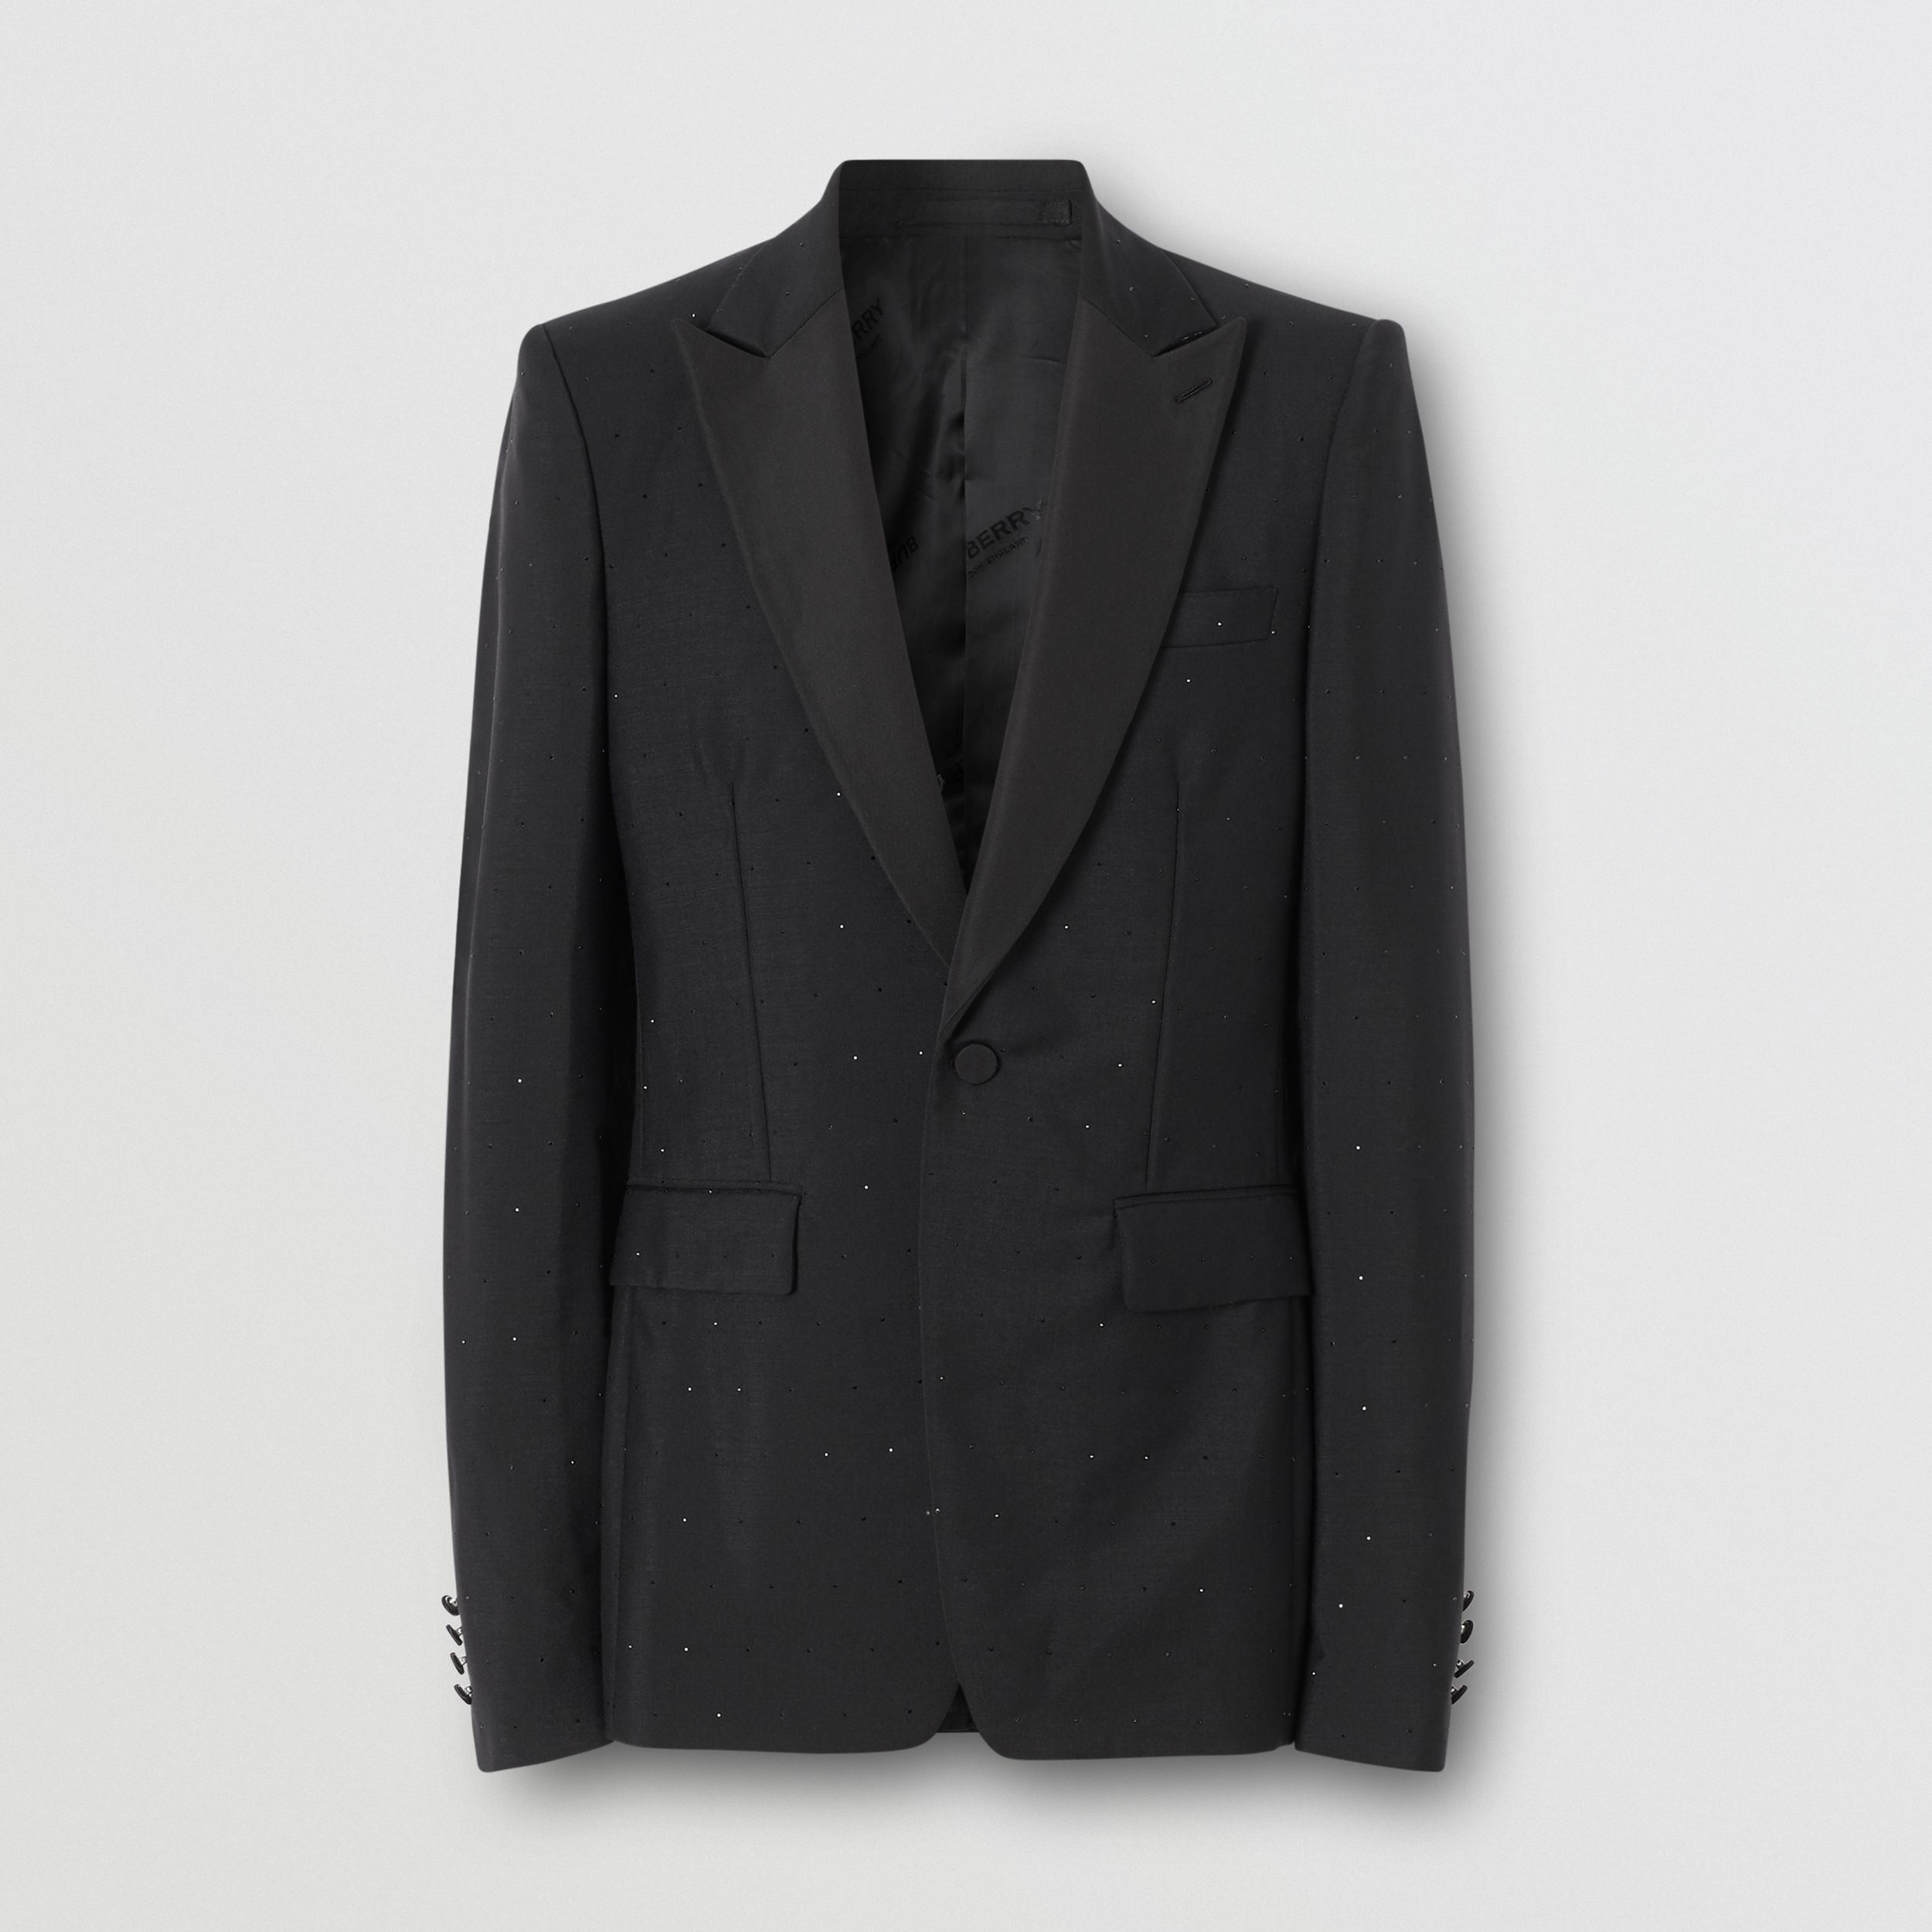 English Fit Embellished Wool Mohair Tailored Jacket in Black - Men | Burberry - 4